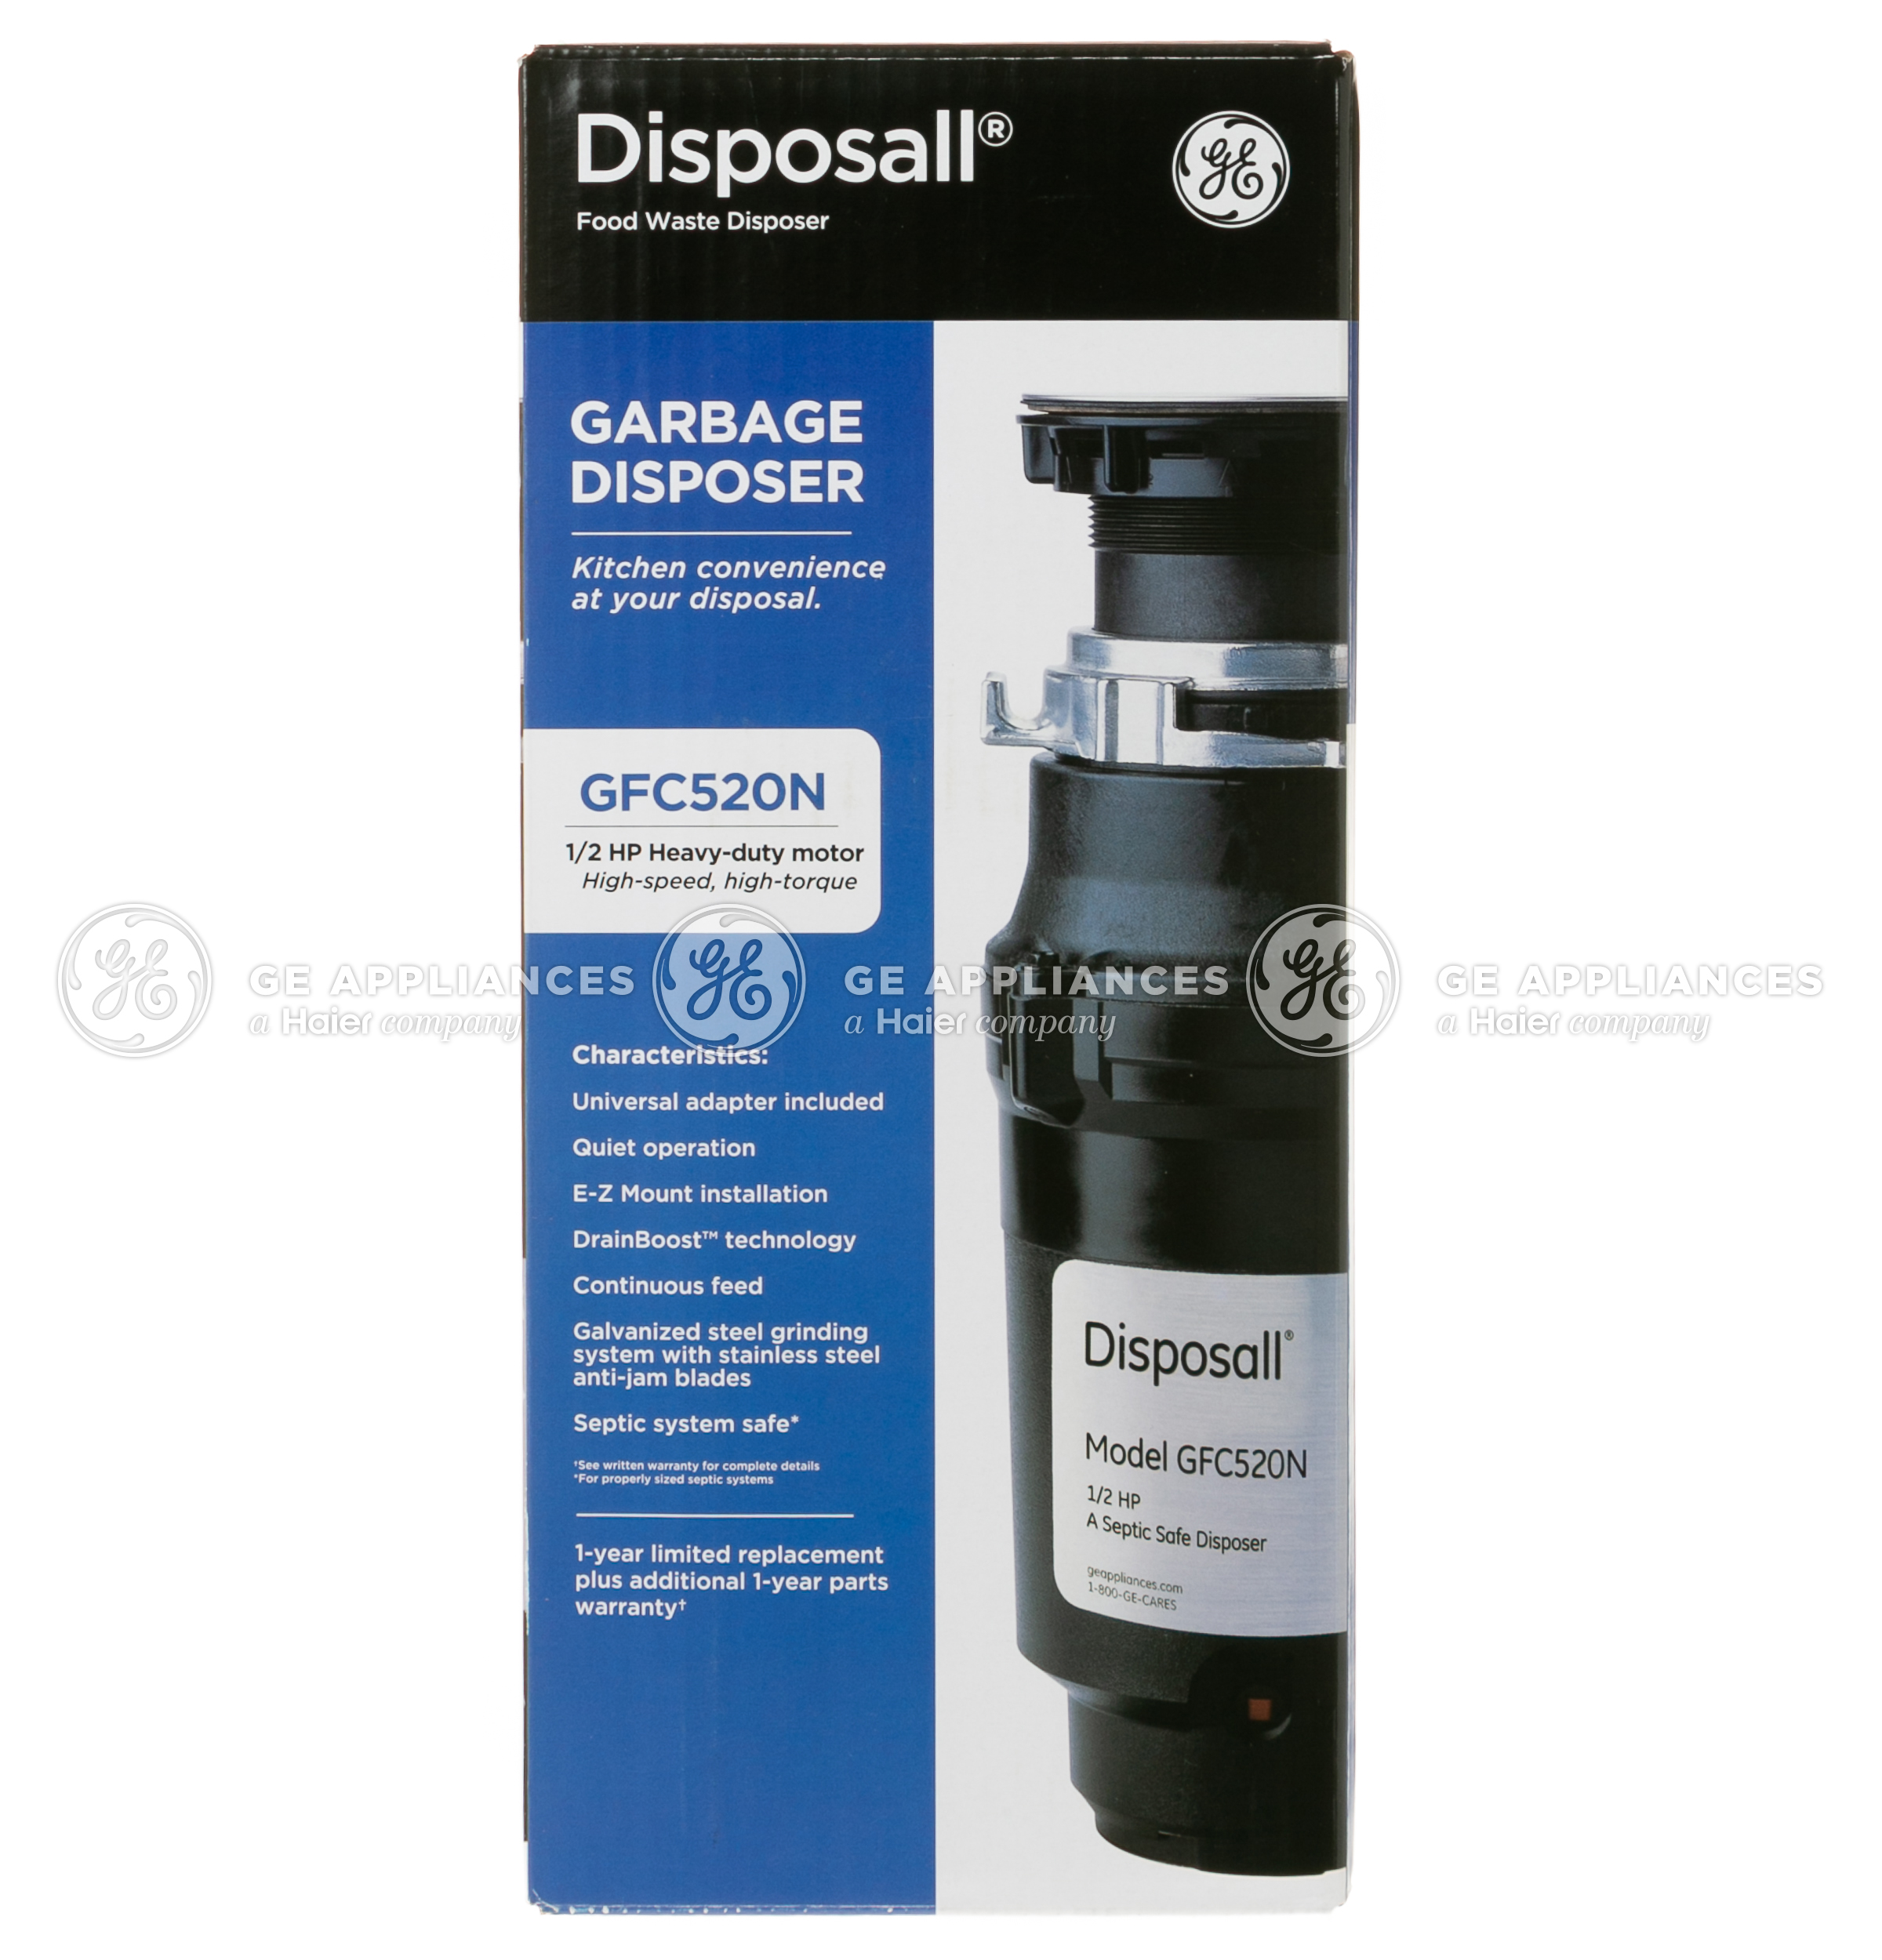 Model: GFC520N | GE GE® 1/2 HP Continuous Feed Garbage Disposer - Non-Corded